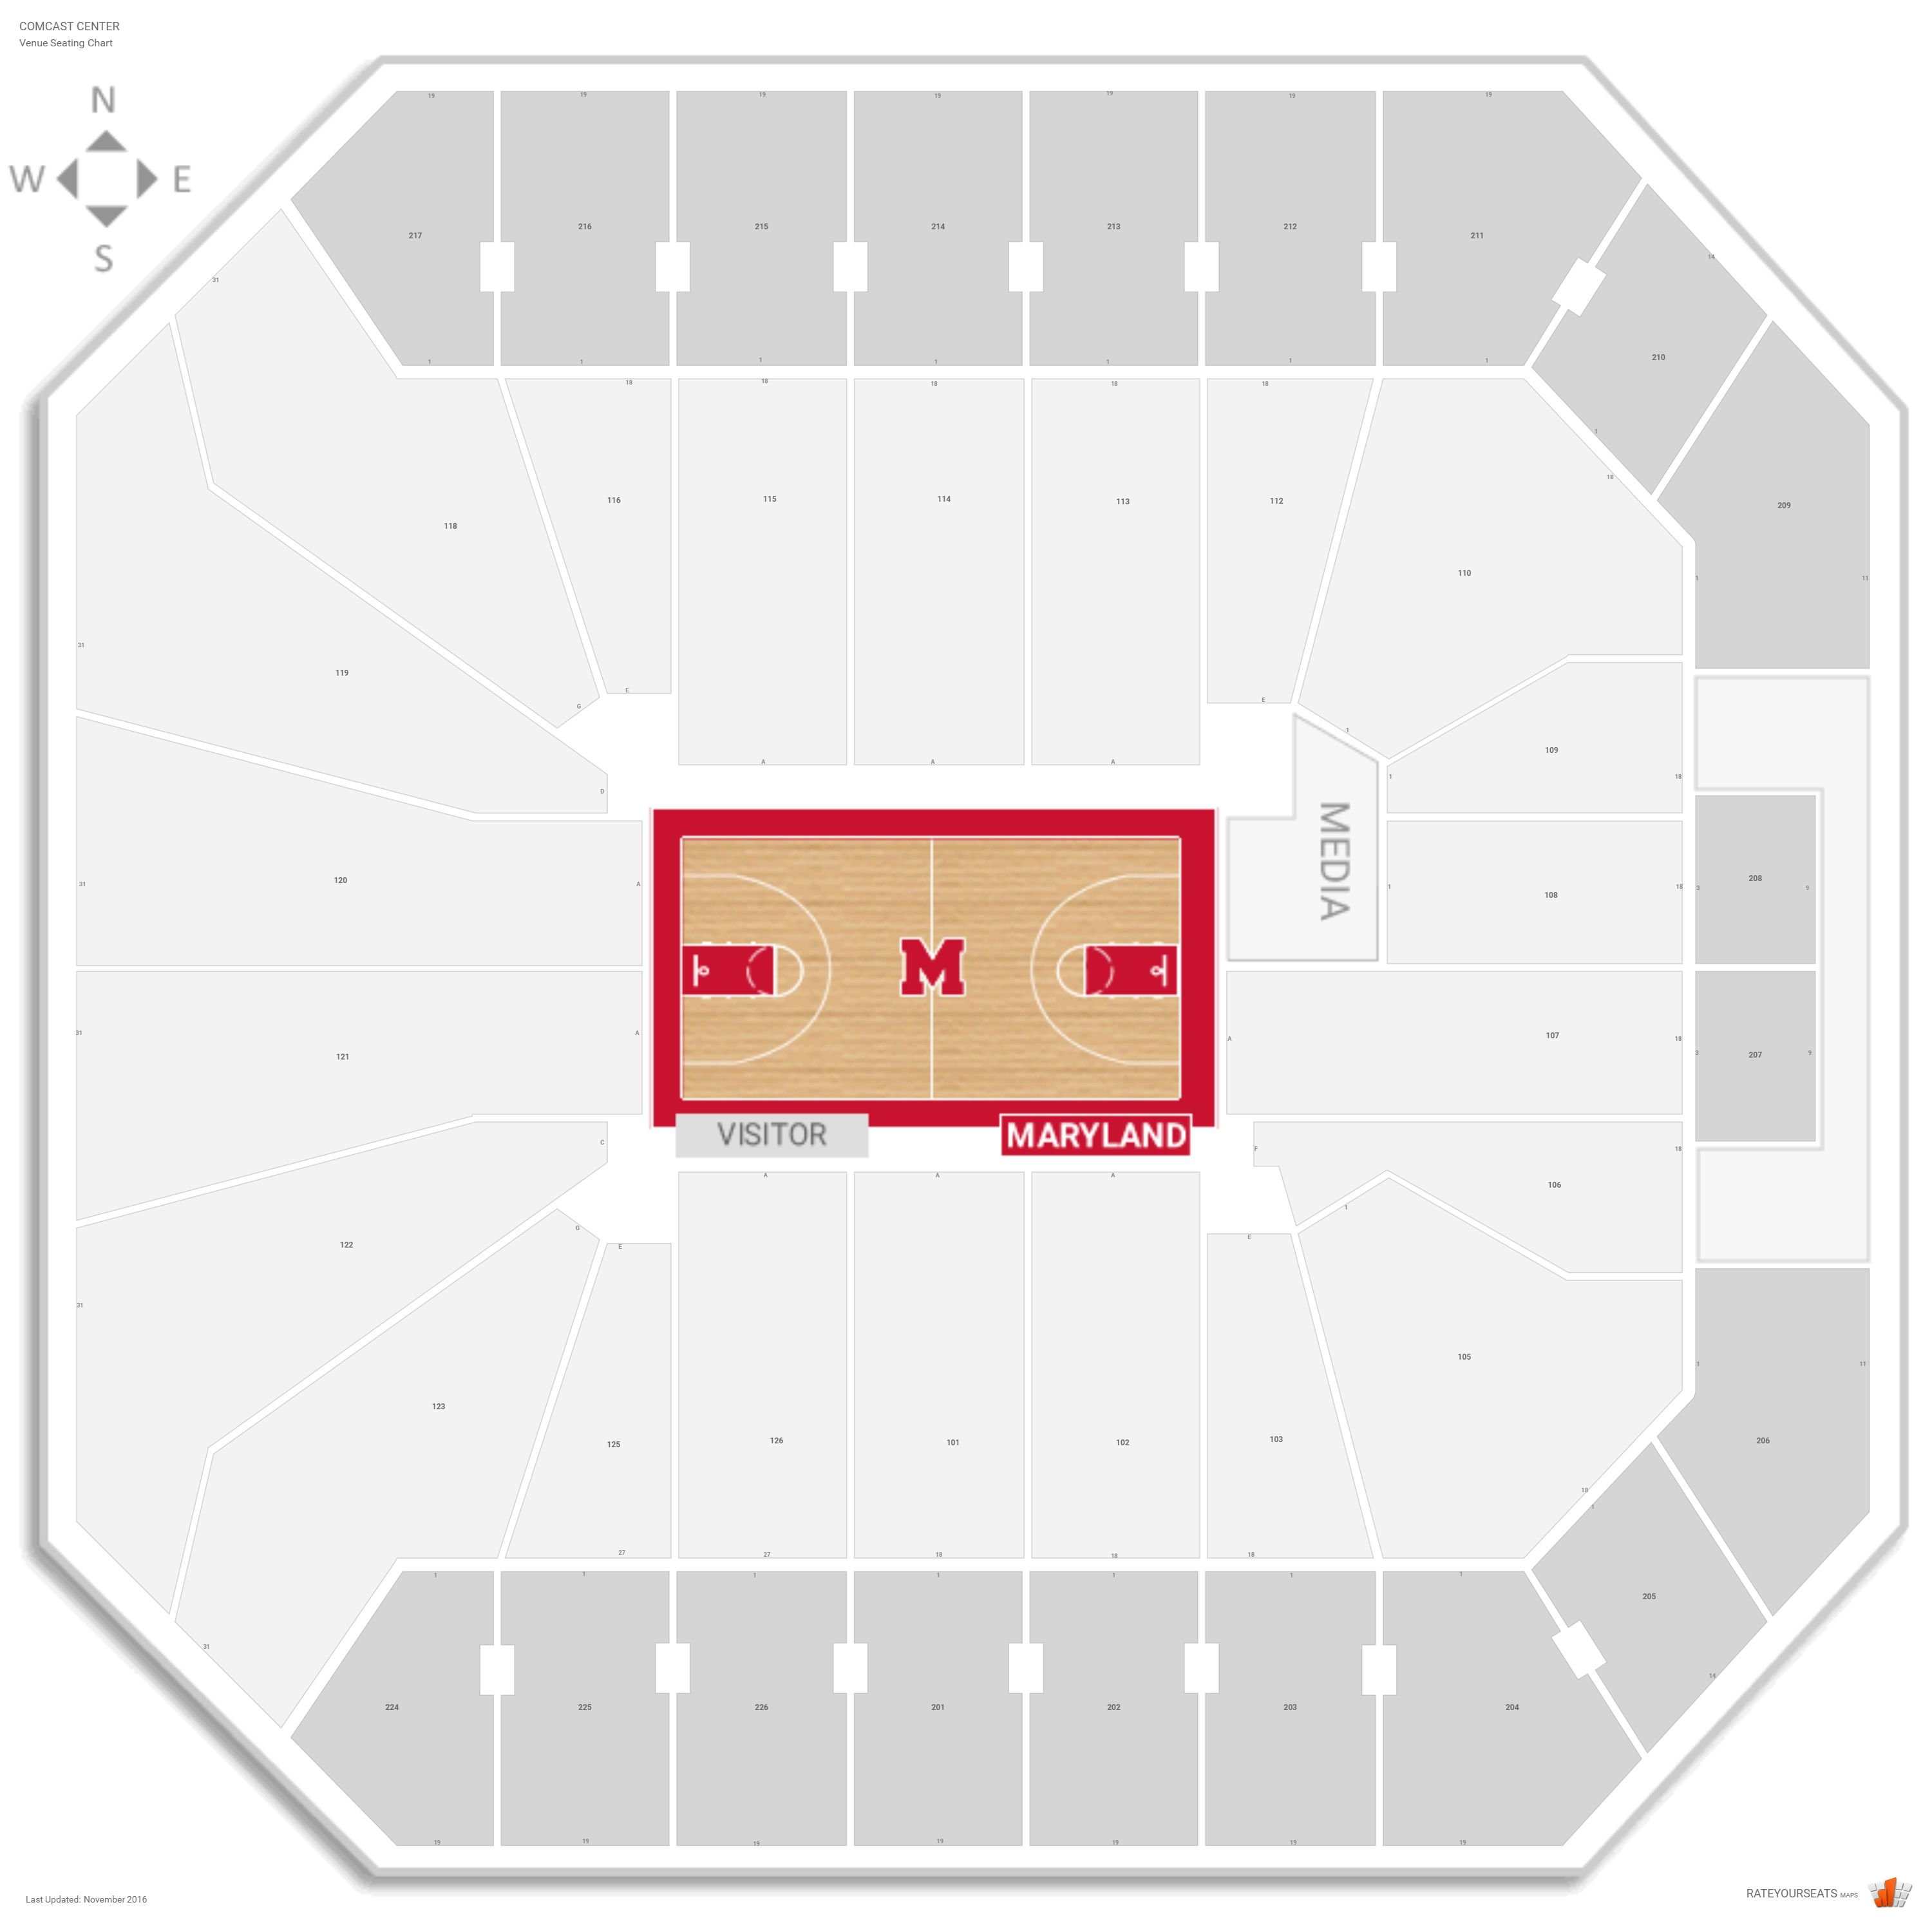 Comcast Center Maryland Seating Guide Rateyourseatscom